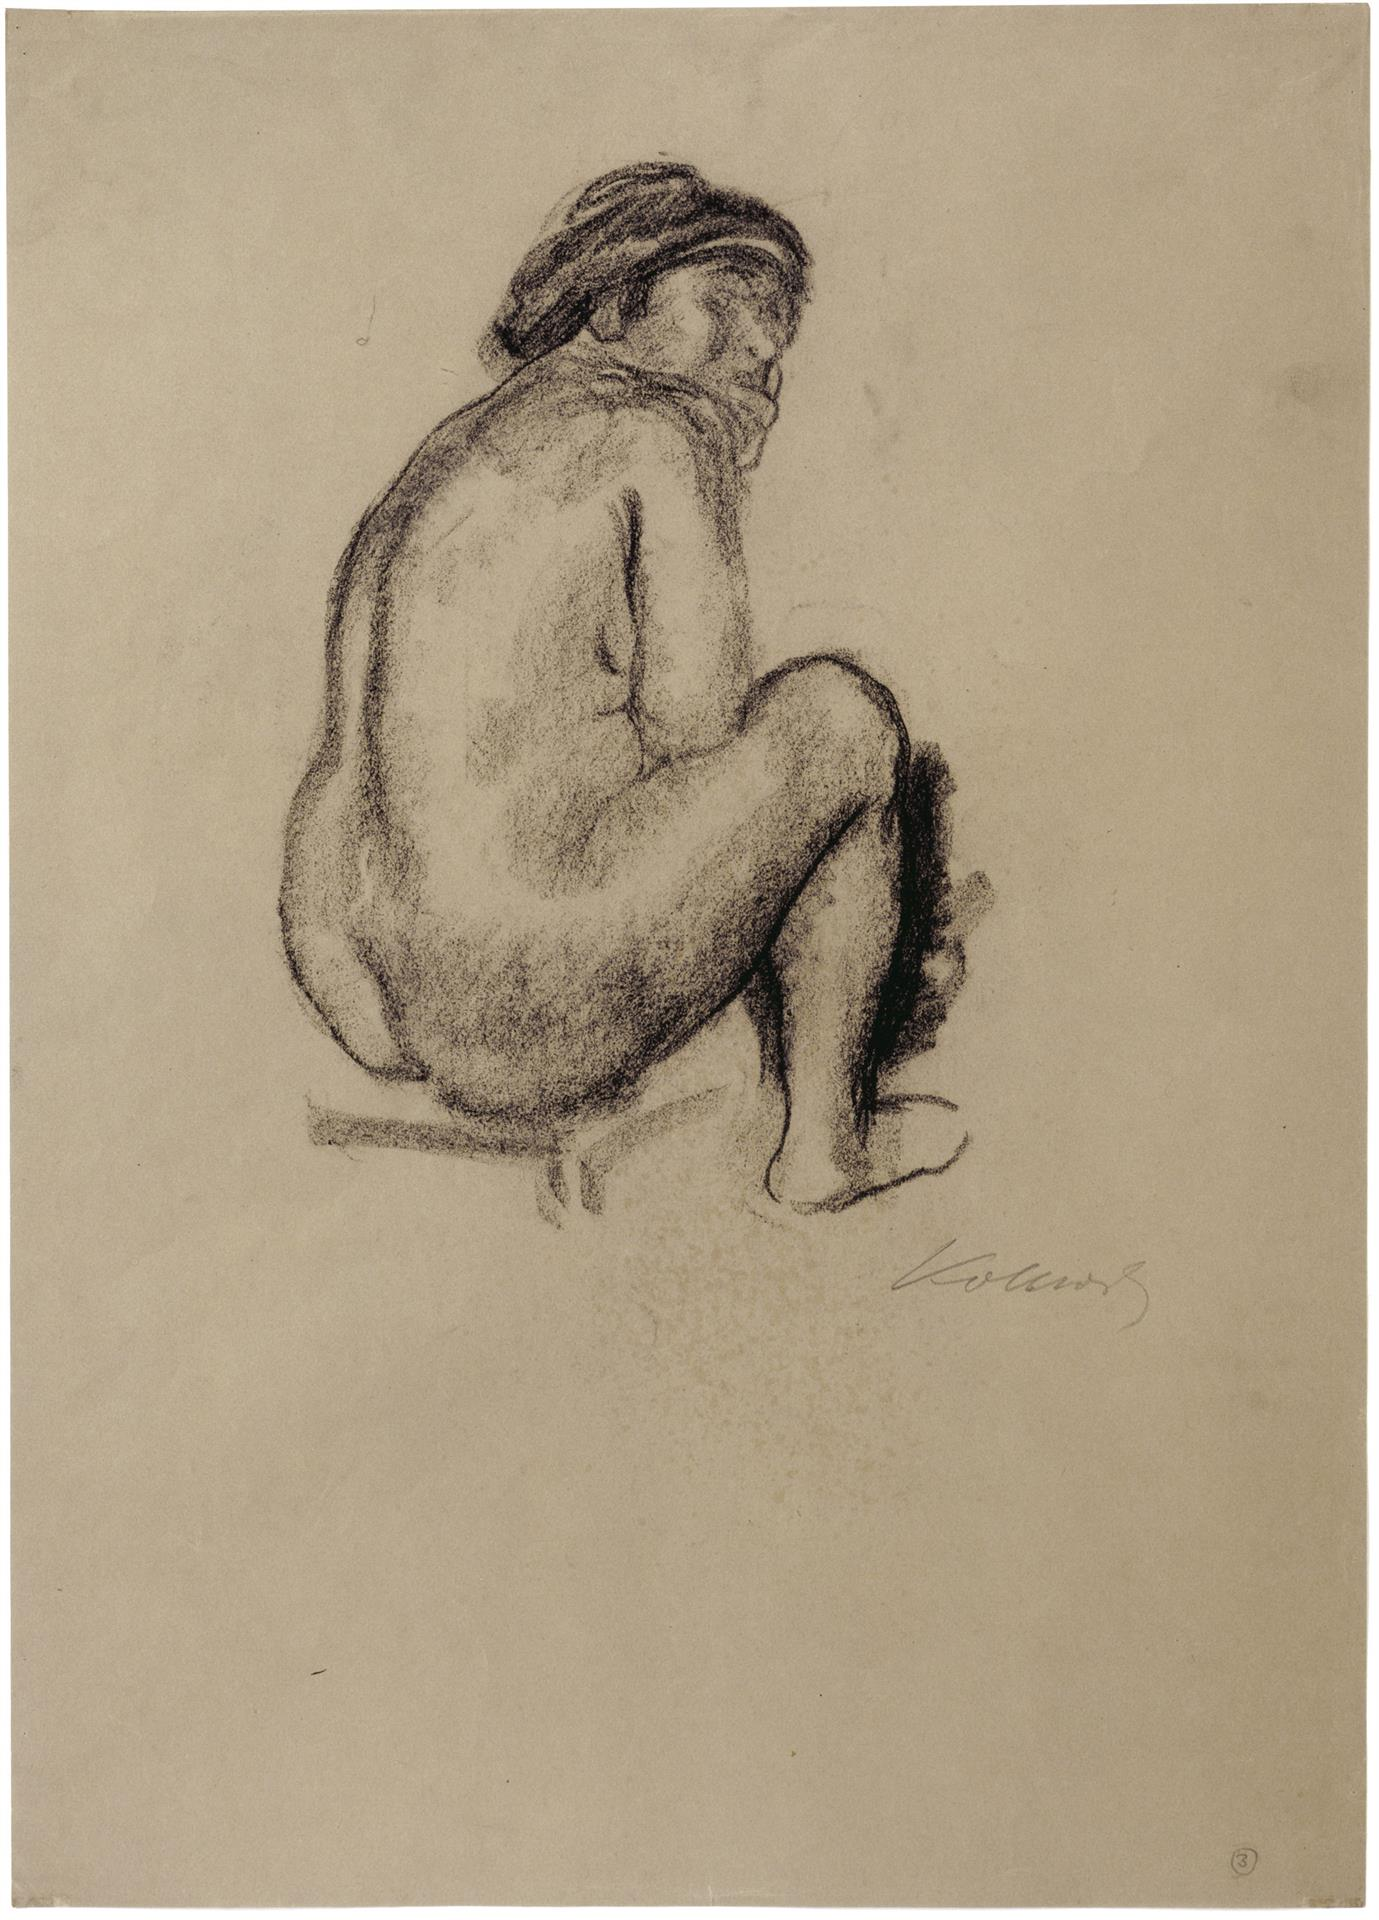 Käthe Kollwitz, Seated Female Nude from behind, looking right, c 1910-1912, charcoal on brown paper, NT 674, Cologne Kollwitz Collection © Käthe Kollwitz Museum Köln